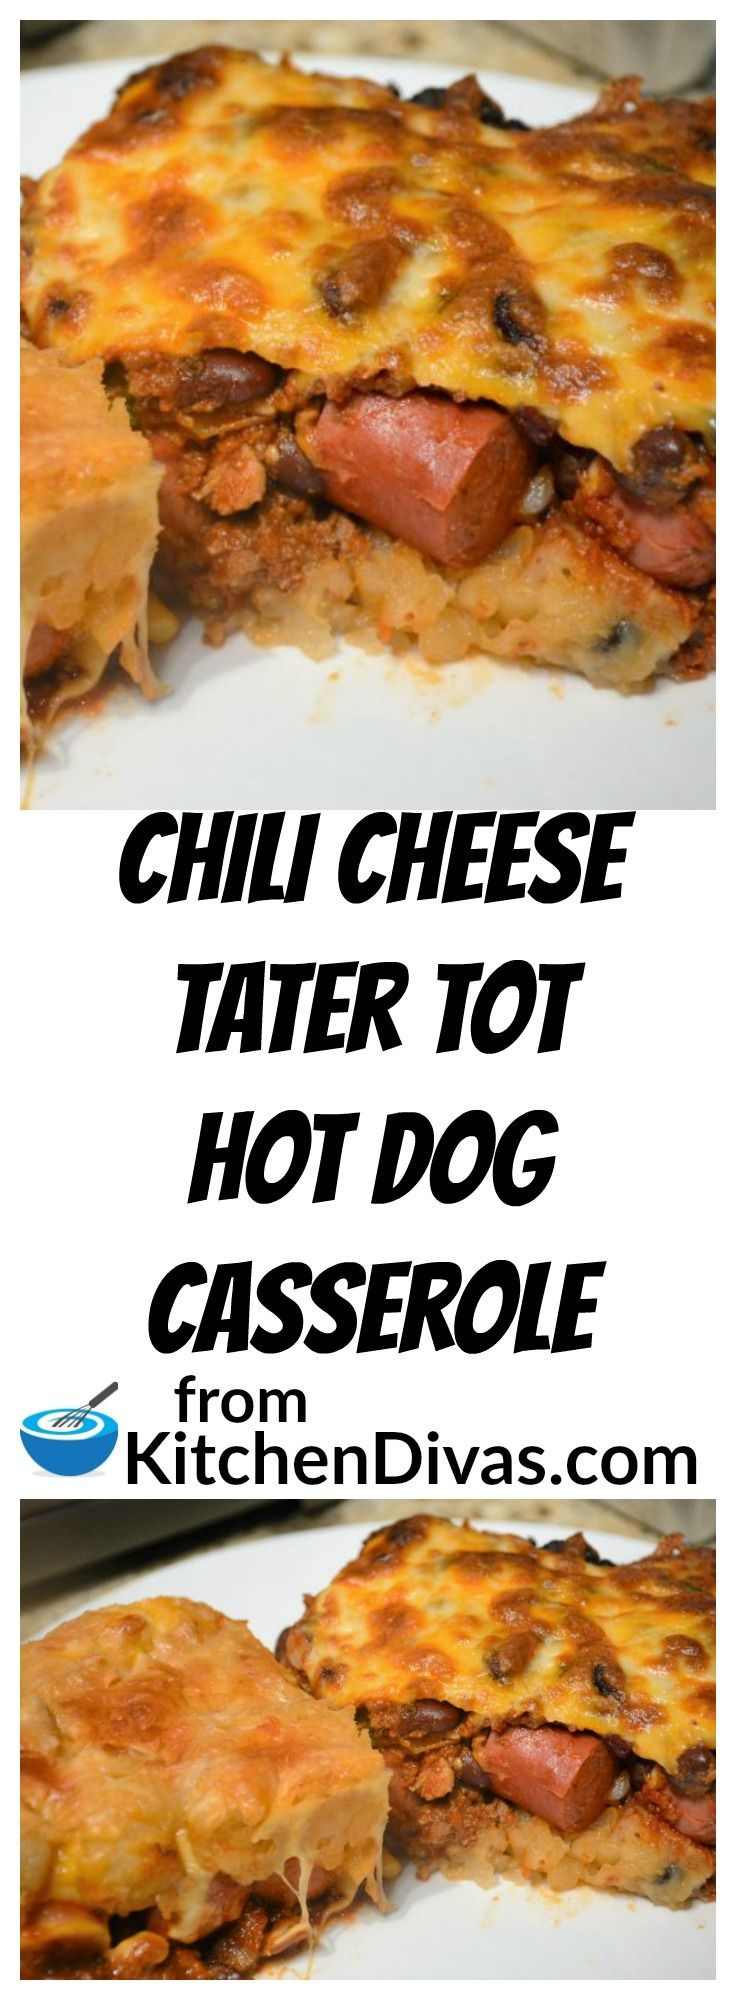 Our recipe for the Ultimate Slow Cooker Chili is perfect for this Chili Cheese Tater Tot Hot Dog Casserole. We could not agree on which way tastes or works better. Ken prefers the tater tots on the bottom and I prefer them on top. We made both for the photo. We both agree though that this simple casserole is totally delicious!